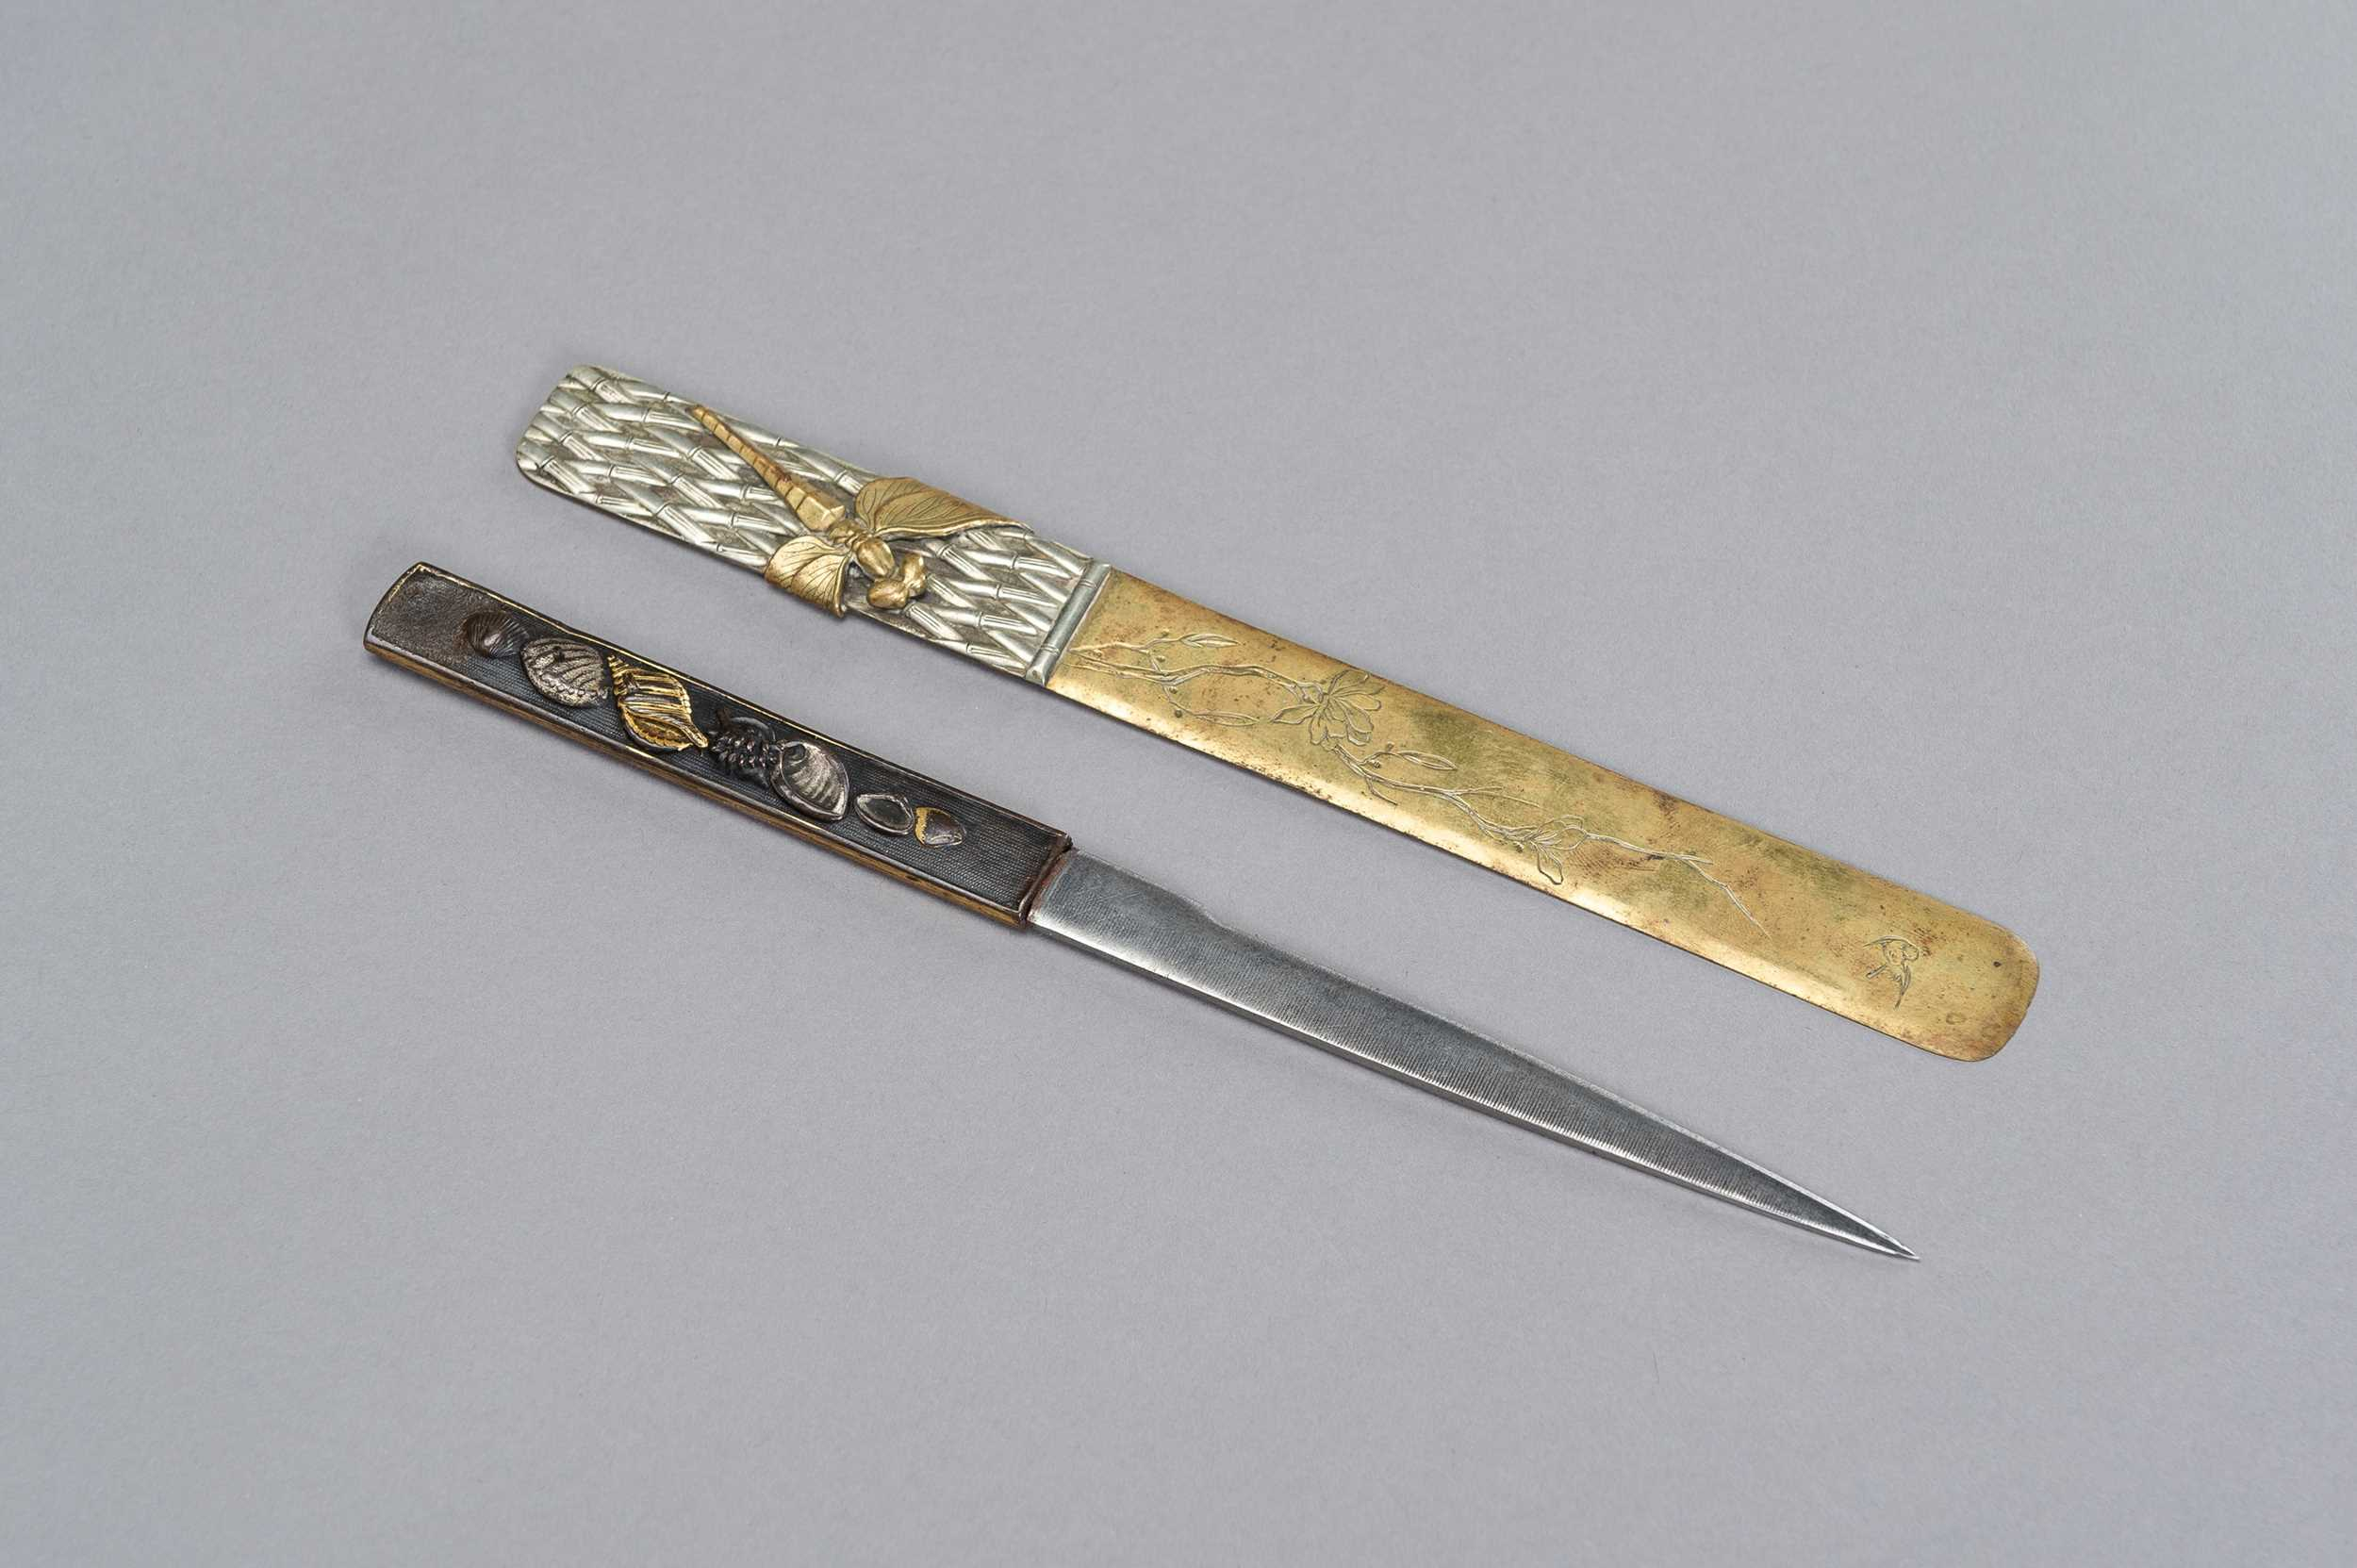 Lot 56 - A COPPER KOZUKA WITH BLADE AND A SENTOKU PAGE TURNER WITH DRAGONFLY